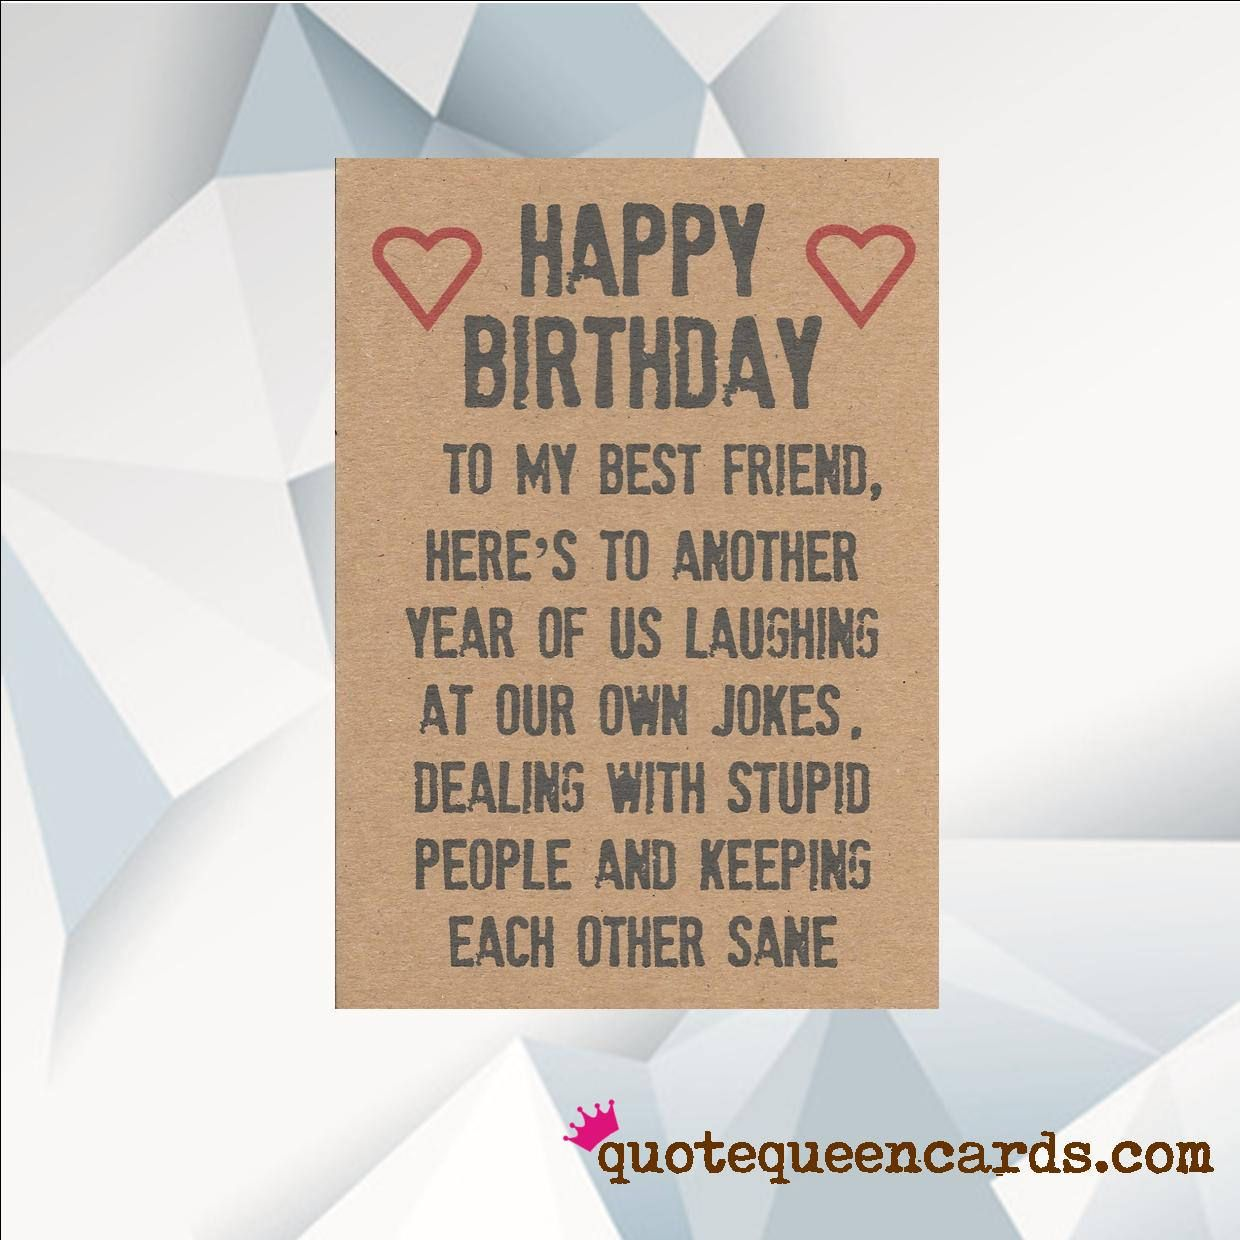 Happy Birthday BEST FRIEND, Funny Birthday Card For Friend